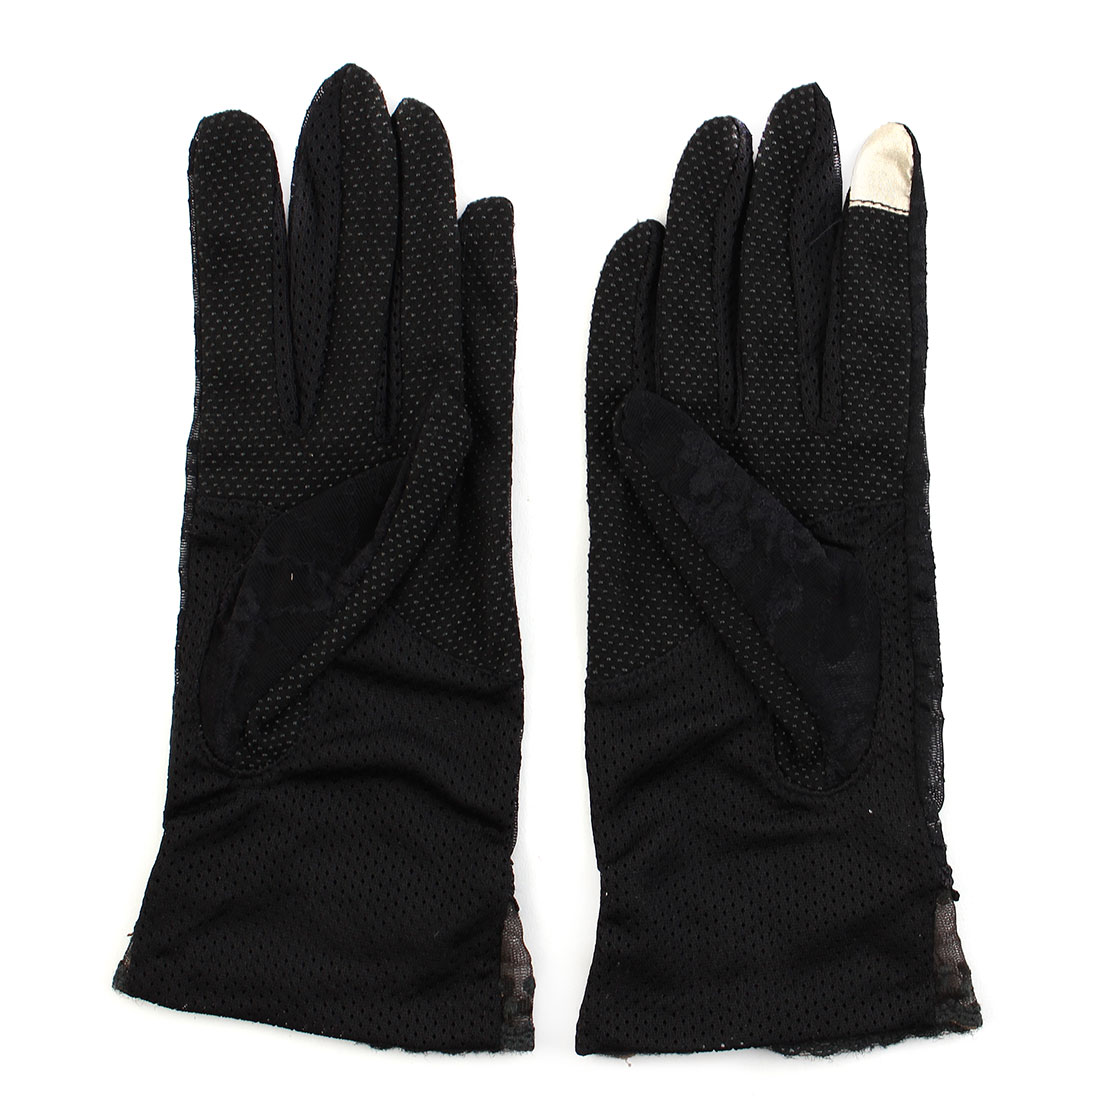 Outdoor Travel Driving Flower Lace Decor Wrist Length Full Finger Sun Resistant Gloves Black Pair for Women